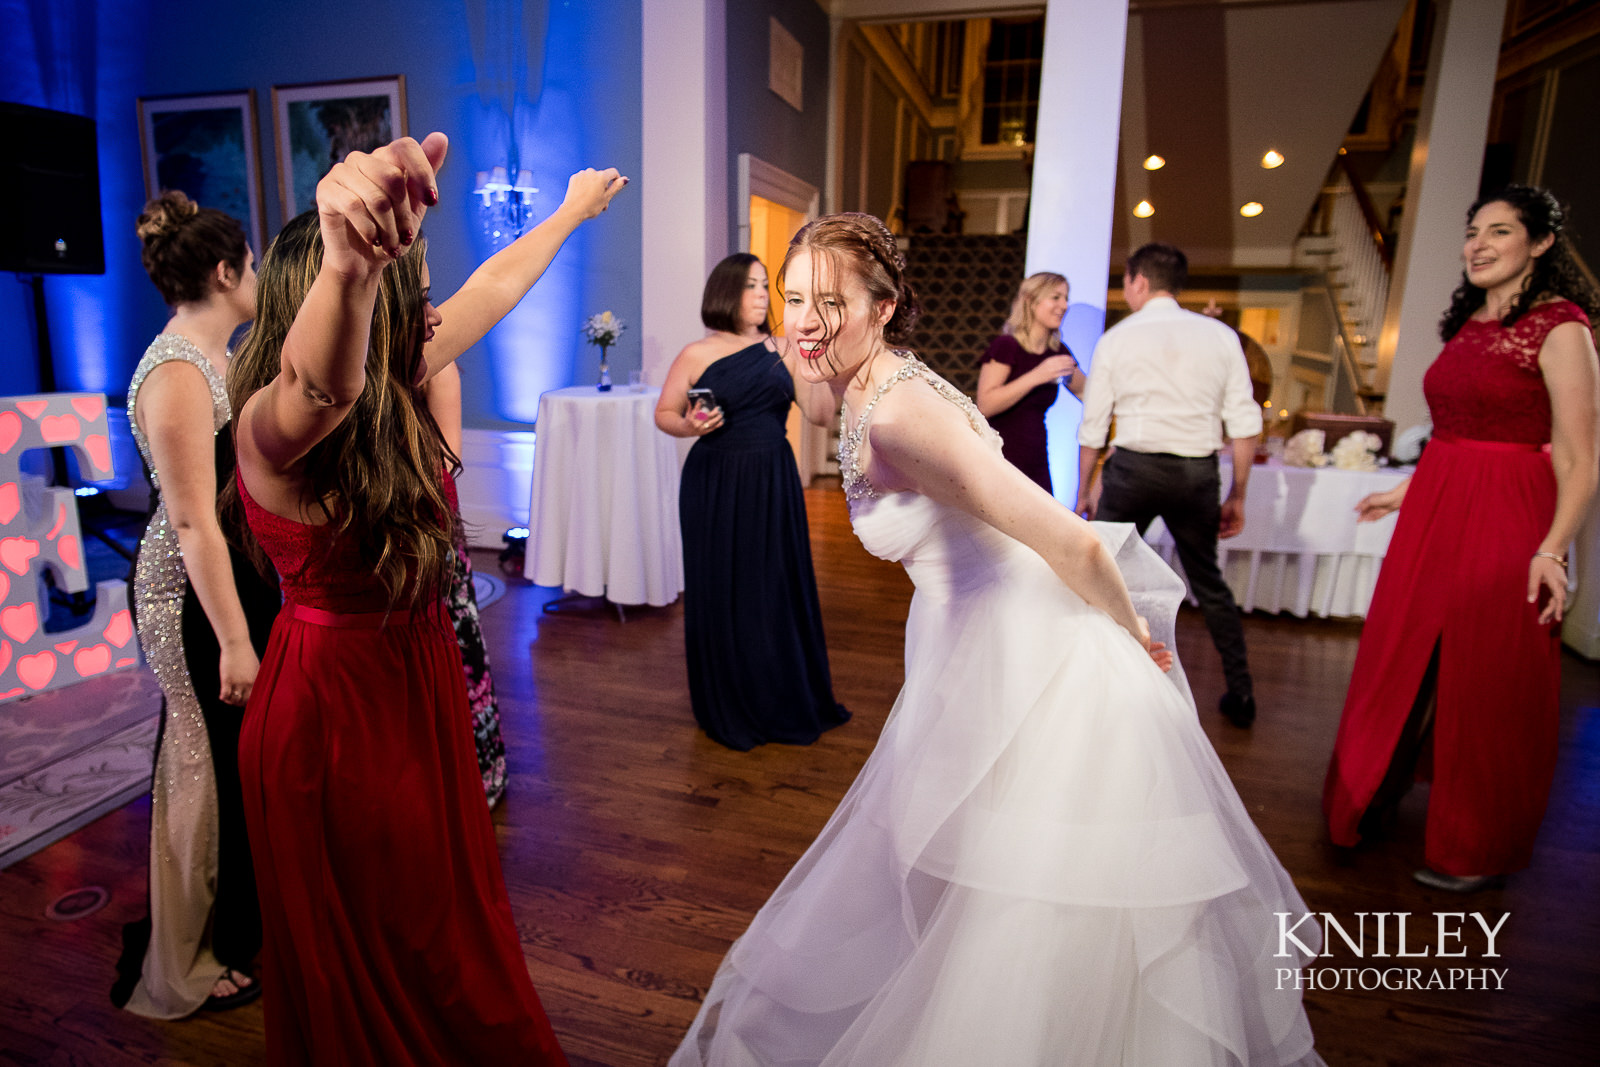 147 - Rochester NY wedding pictures - Genesee Valley Club - Ceremony and Reception - XT2B7496.jpg